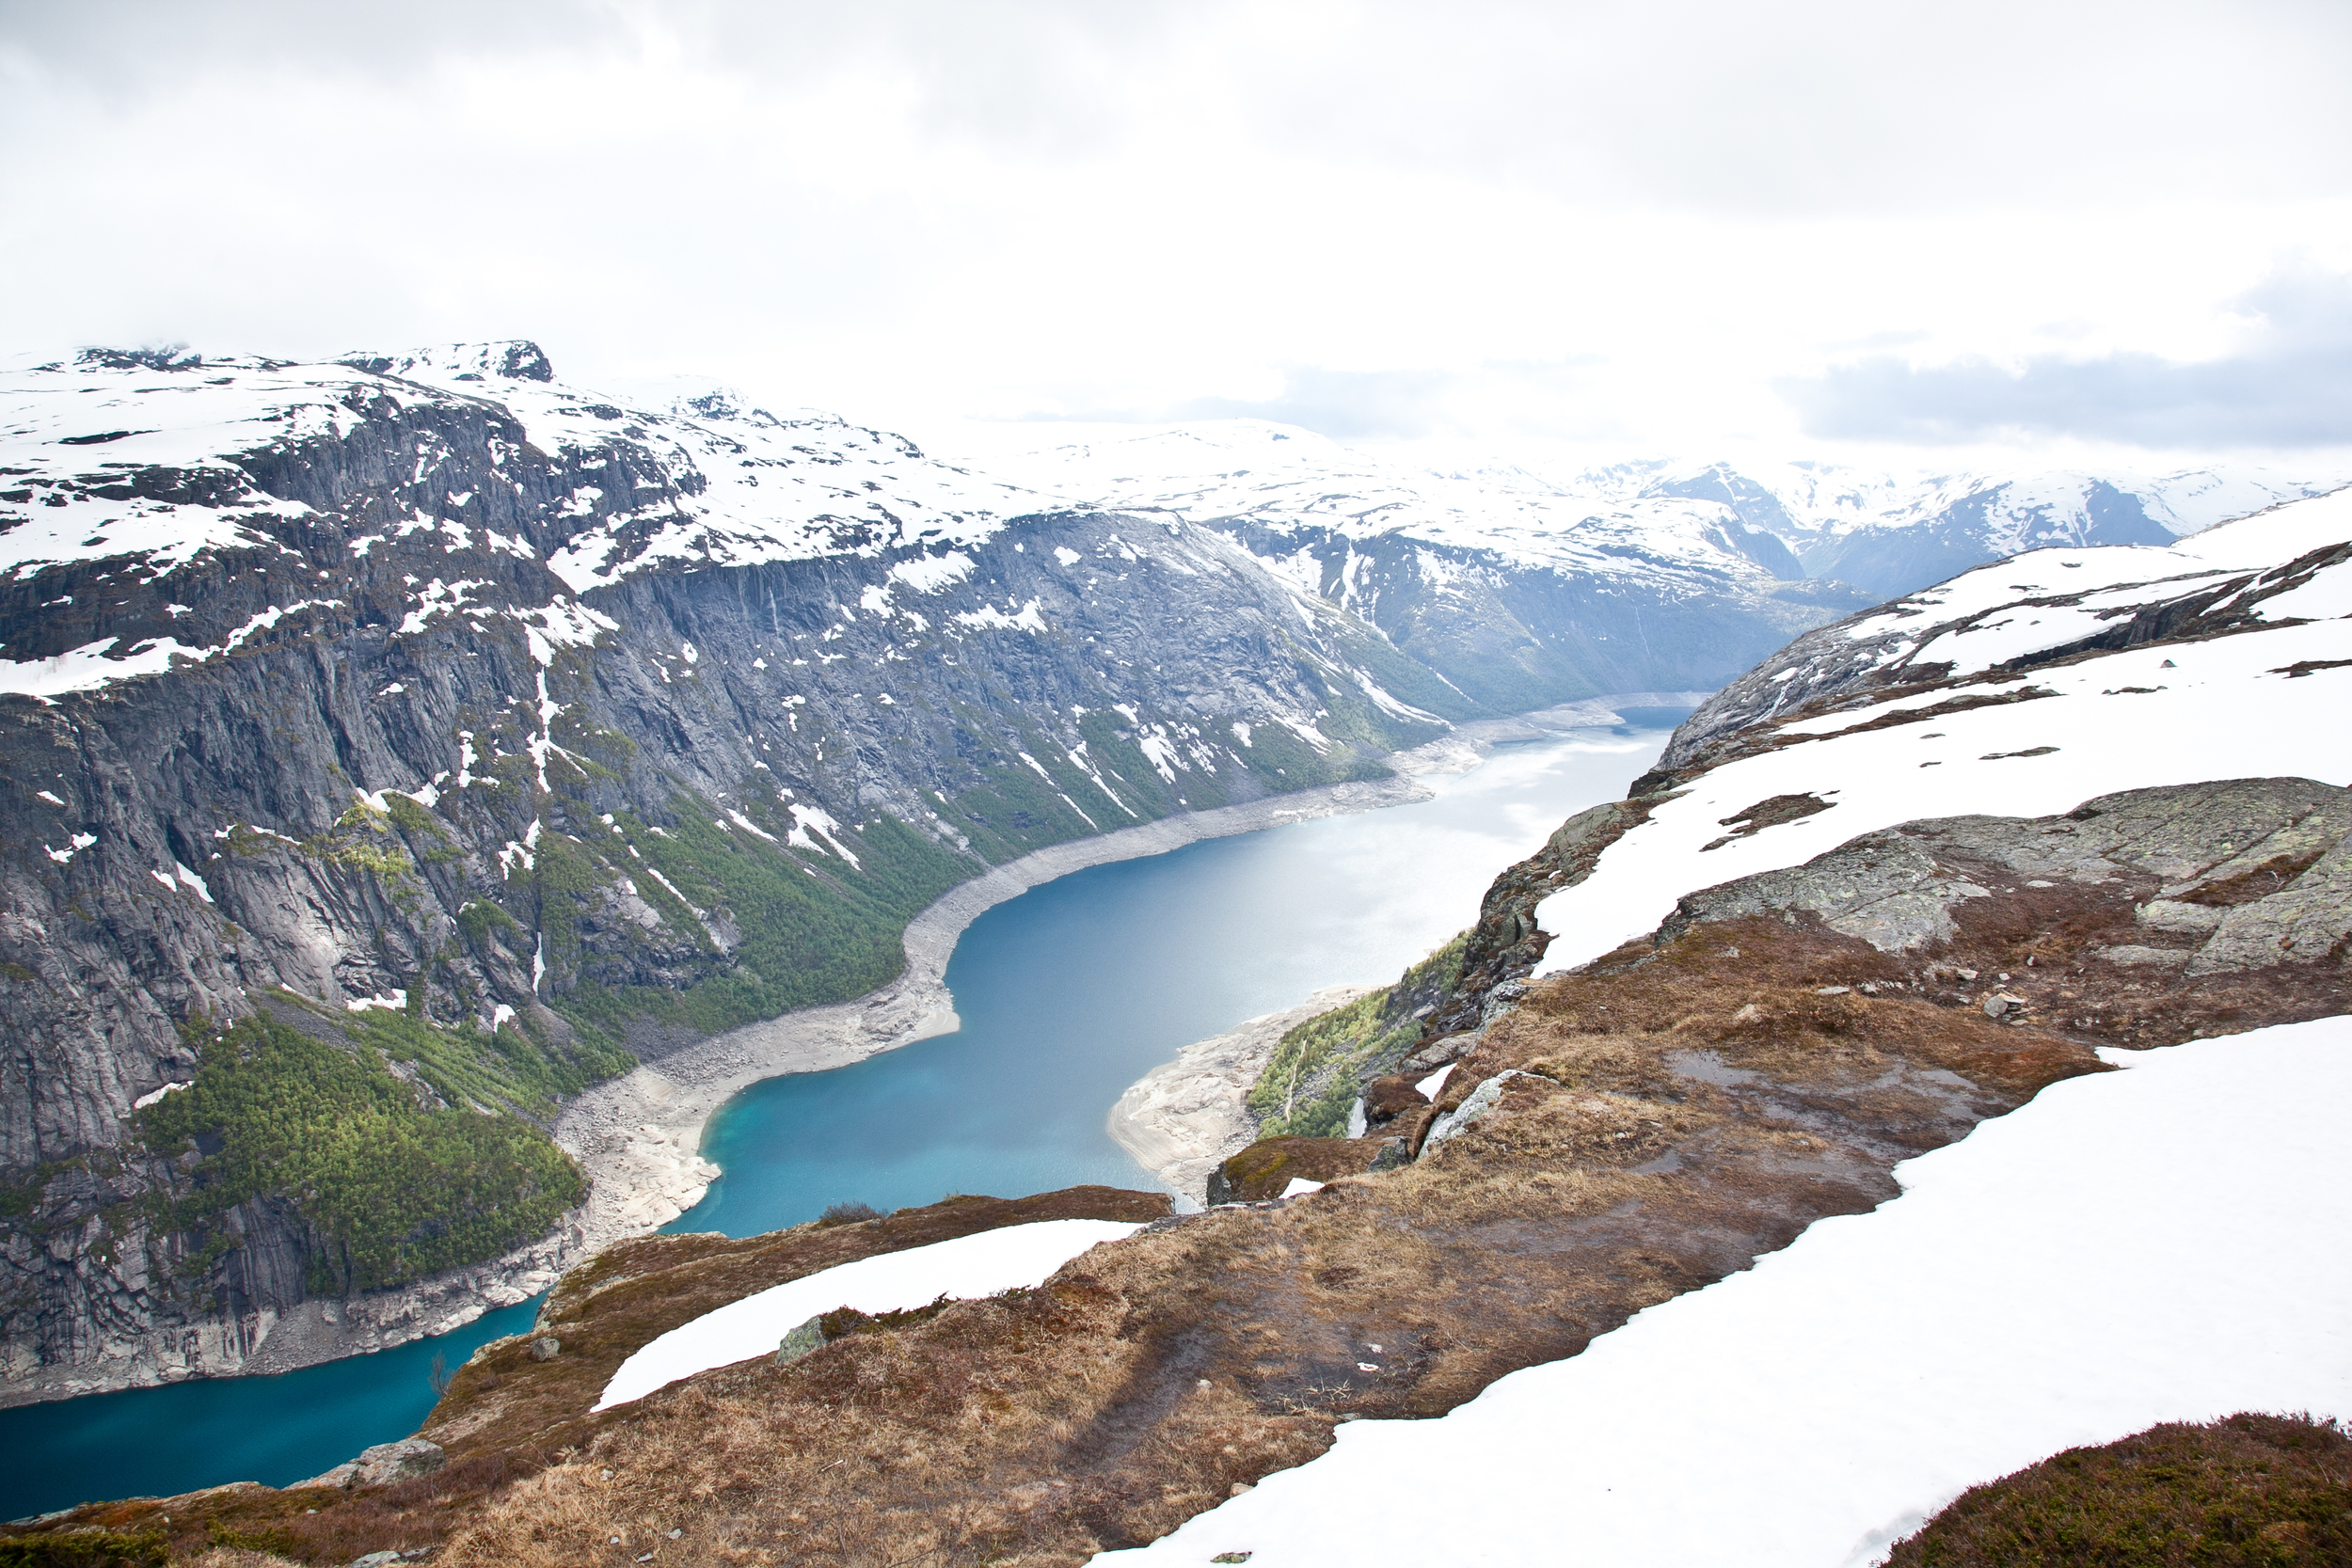 IMG_3829-trolltunga-norway-hiking-trisa-taro.jpg